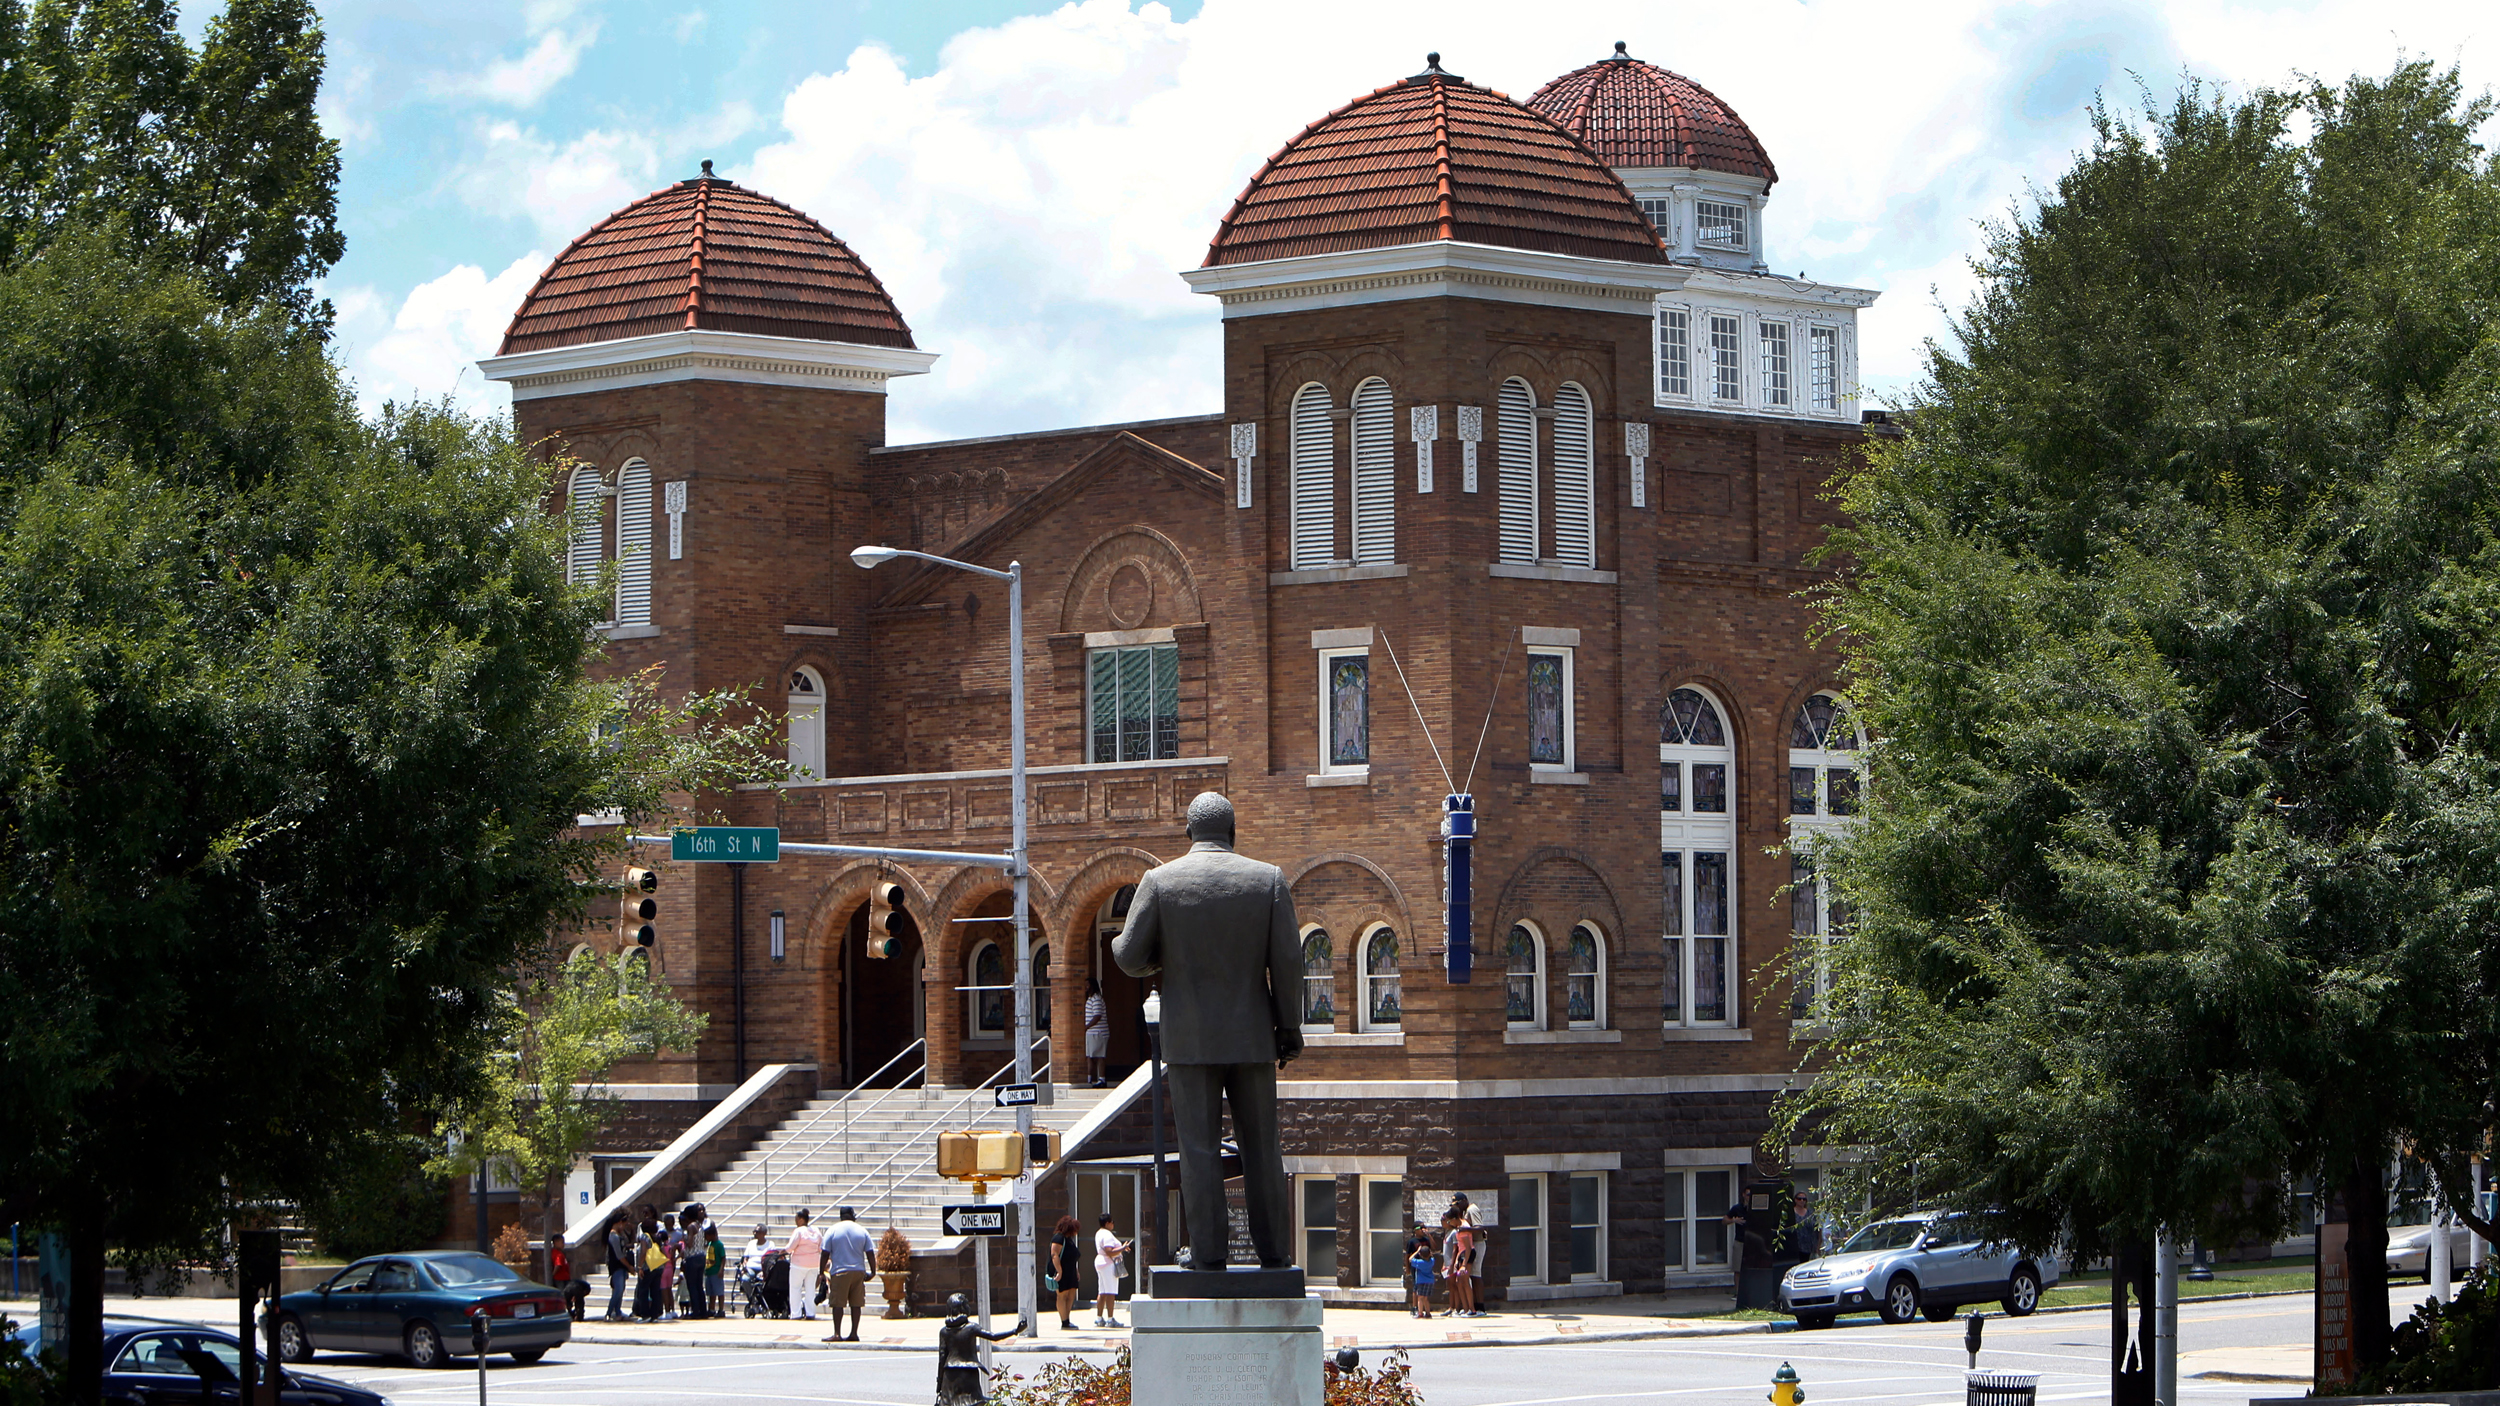 The Reverend Martin Luther King statue in Kelly Ingram Park acr